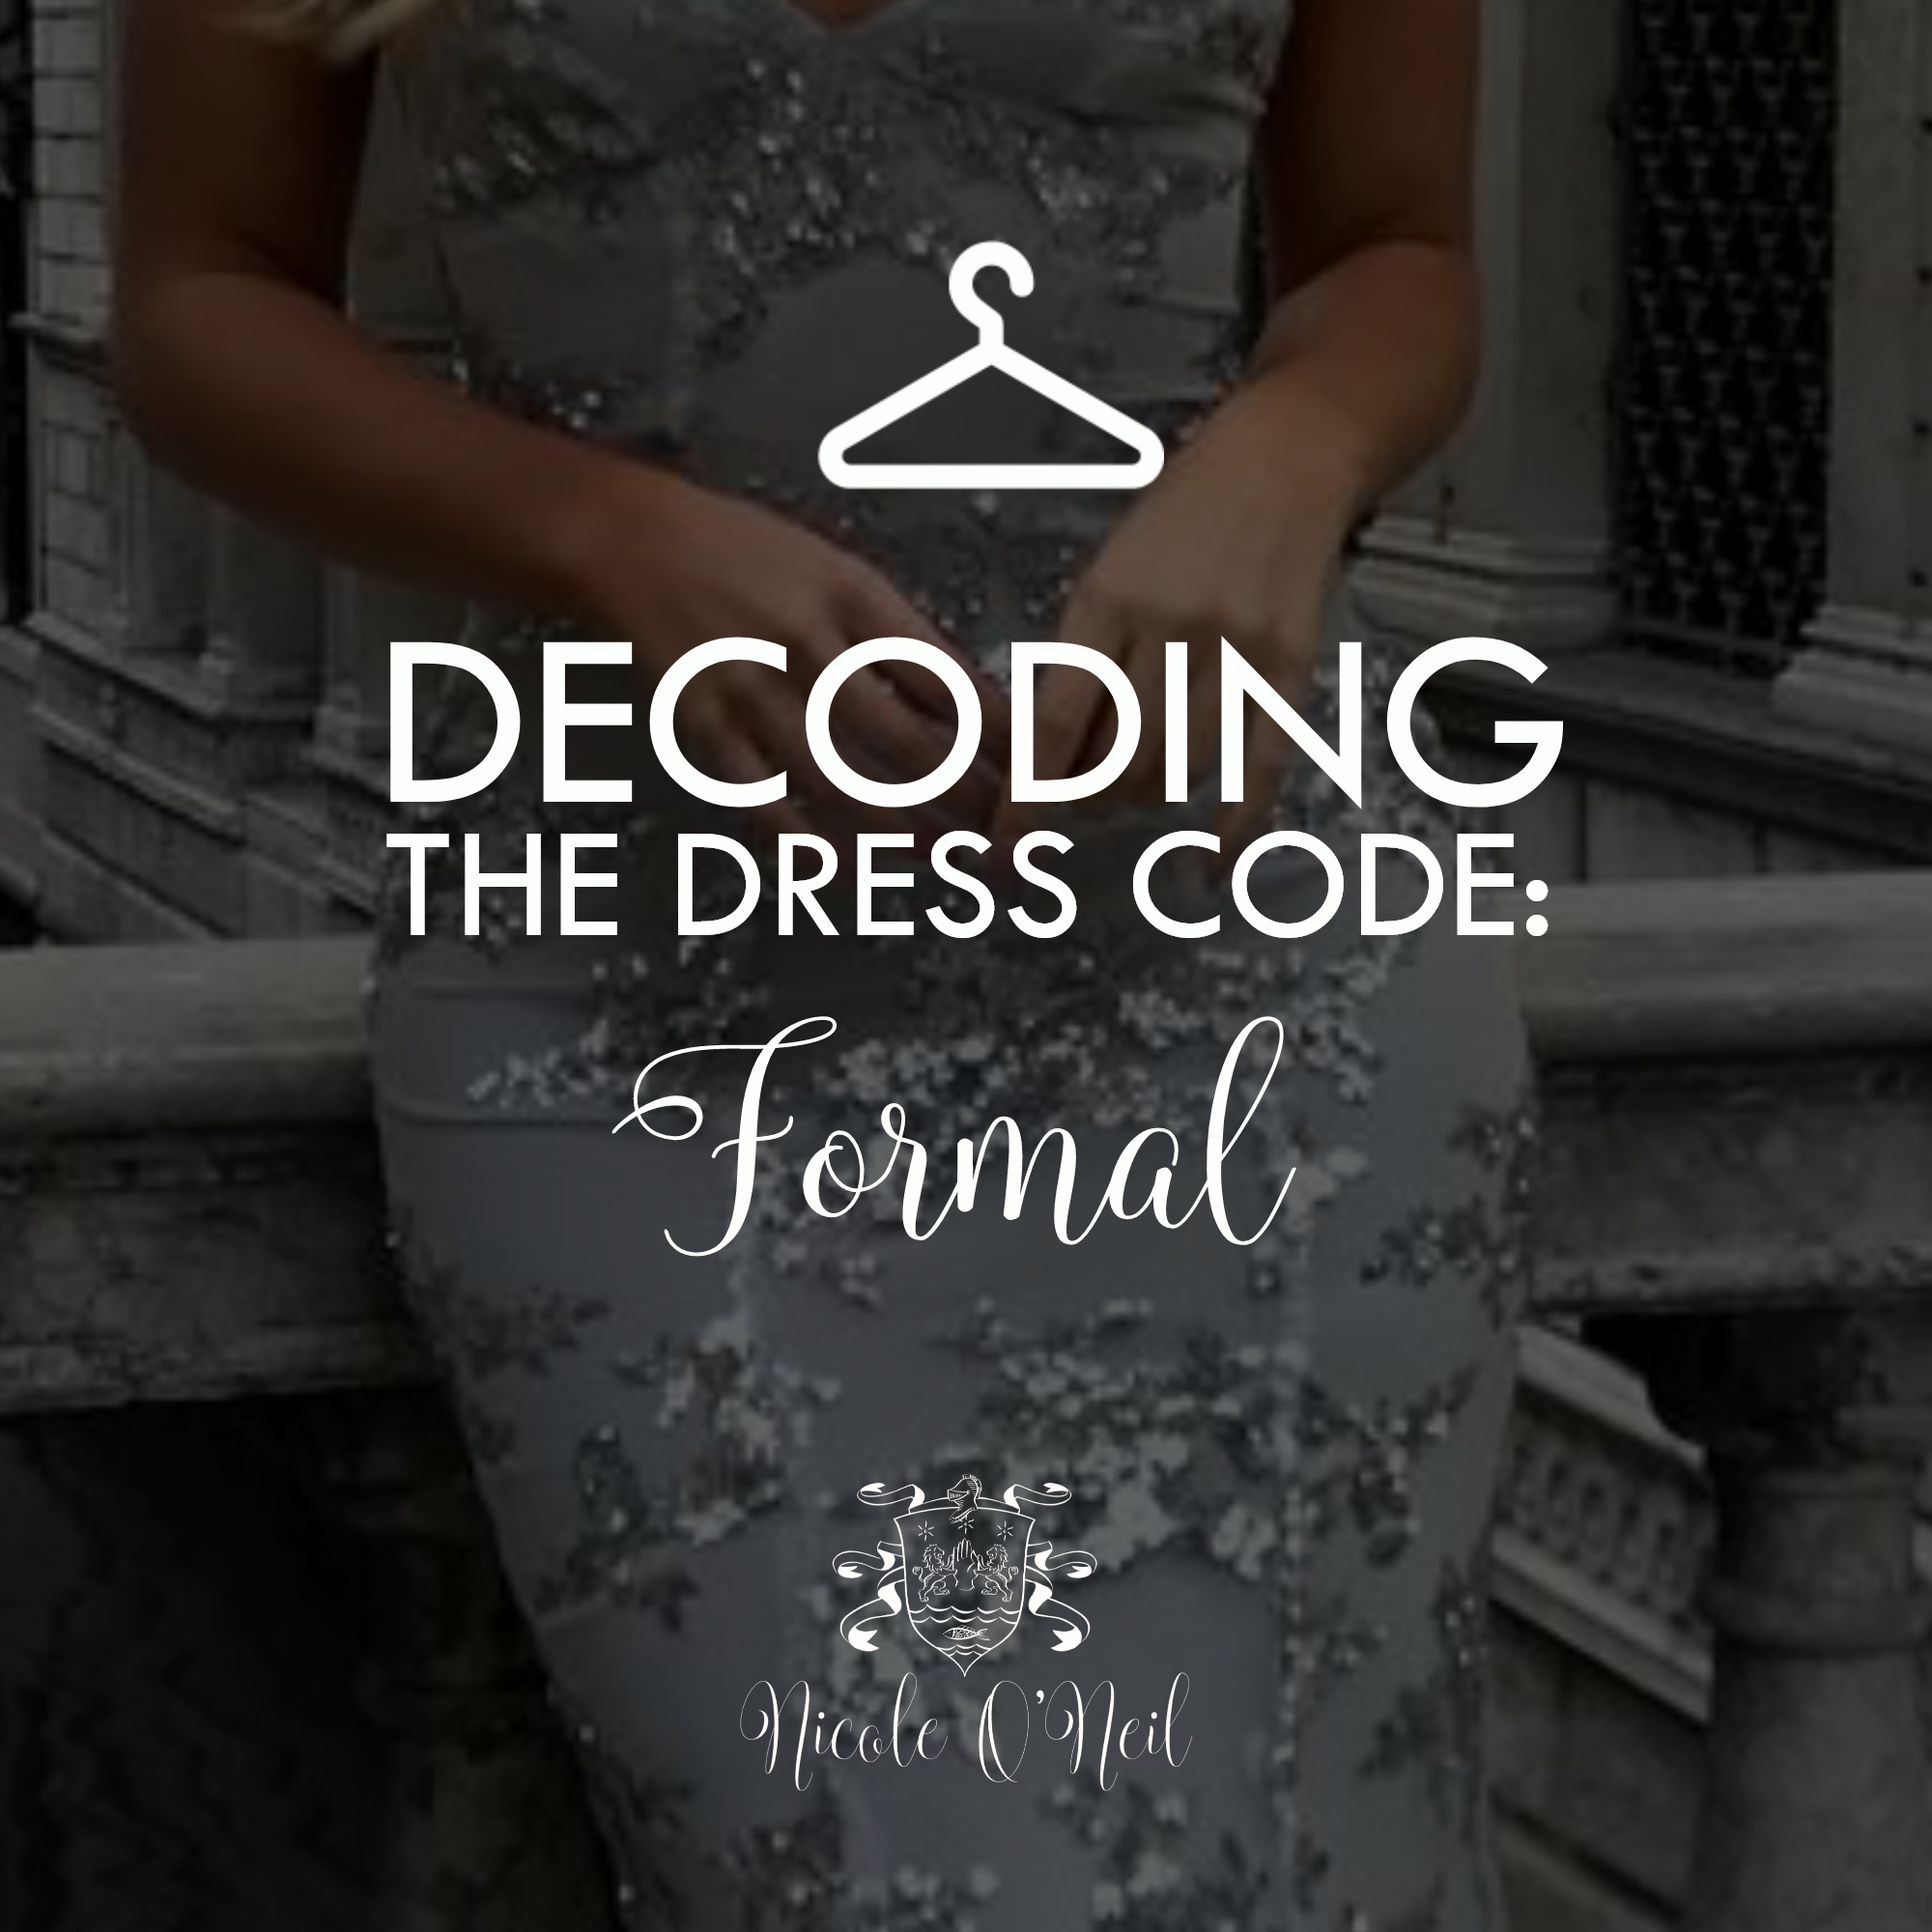 Decoding the Dress Code - What to Wear to a Formal Wedding or Event Outfit Inspiration